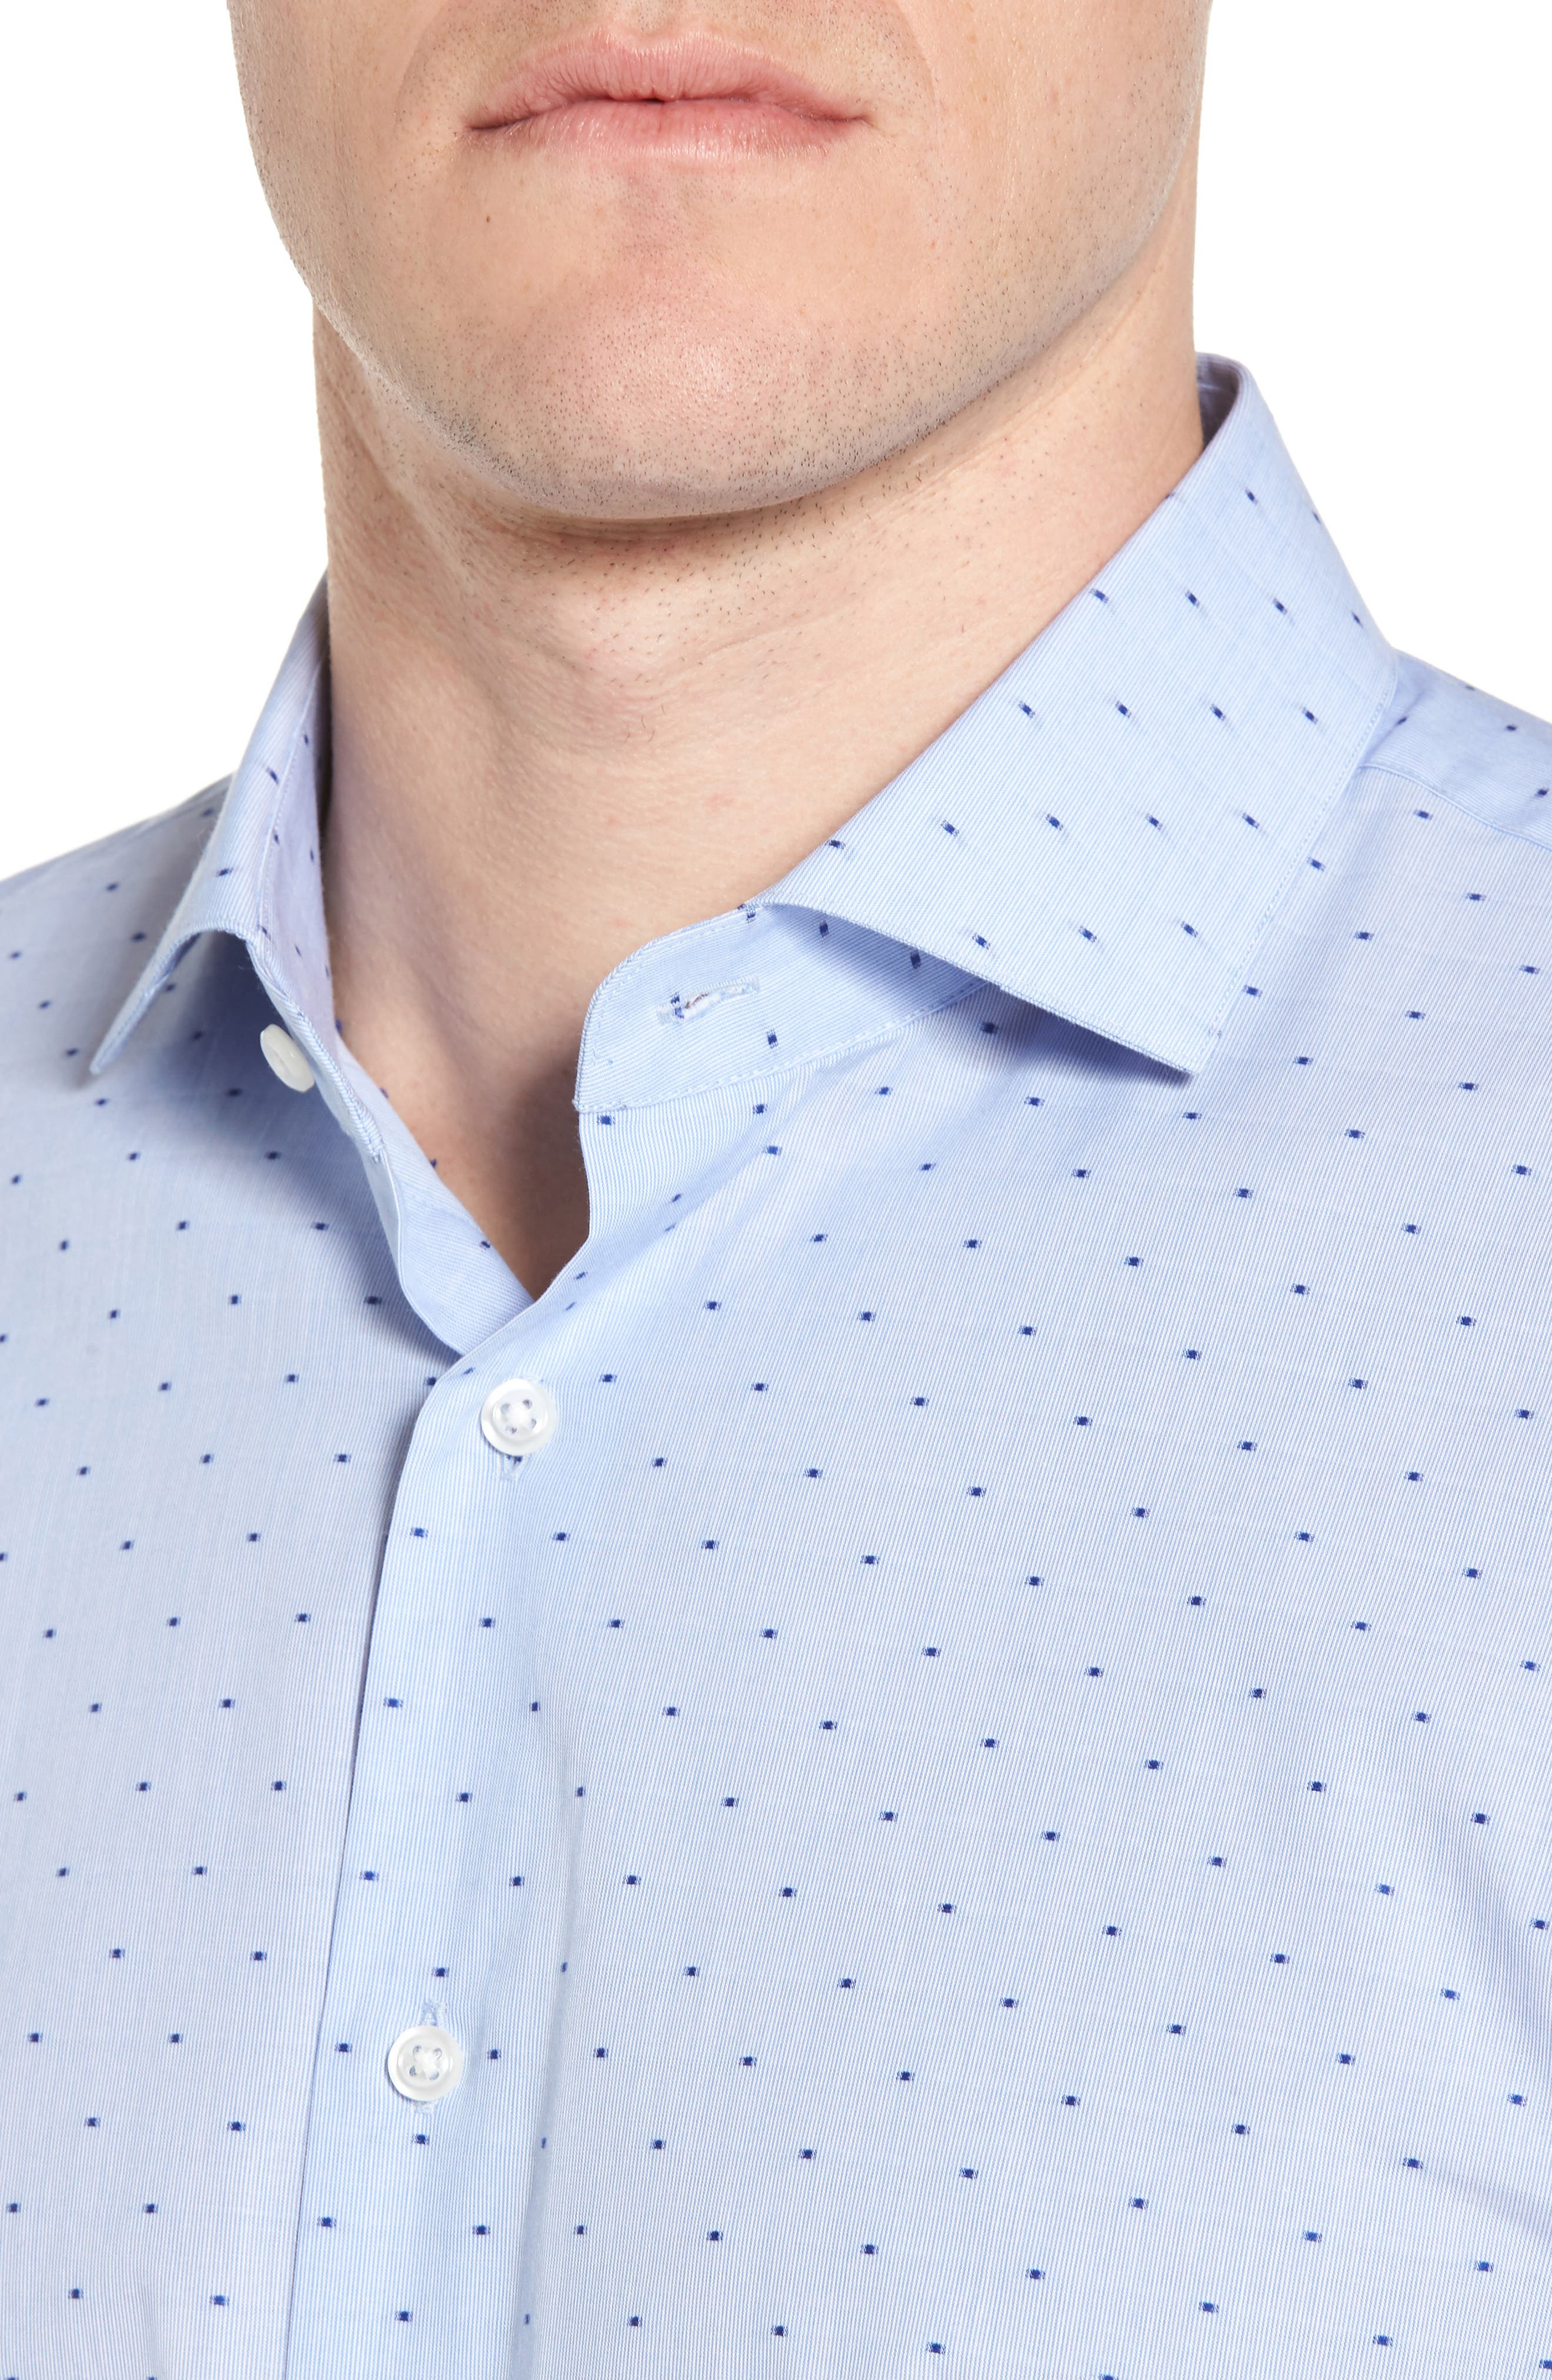 Trim Fit Dot Dress Shirt,                             Alternate thumbnail 2, color,                             Blue Hydrangea